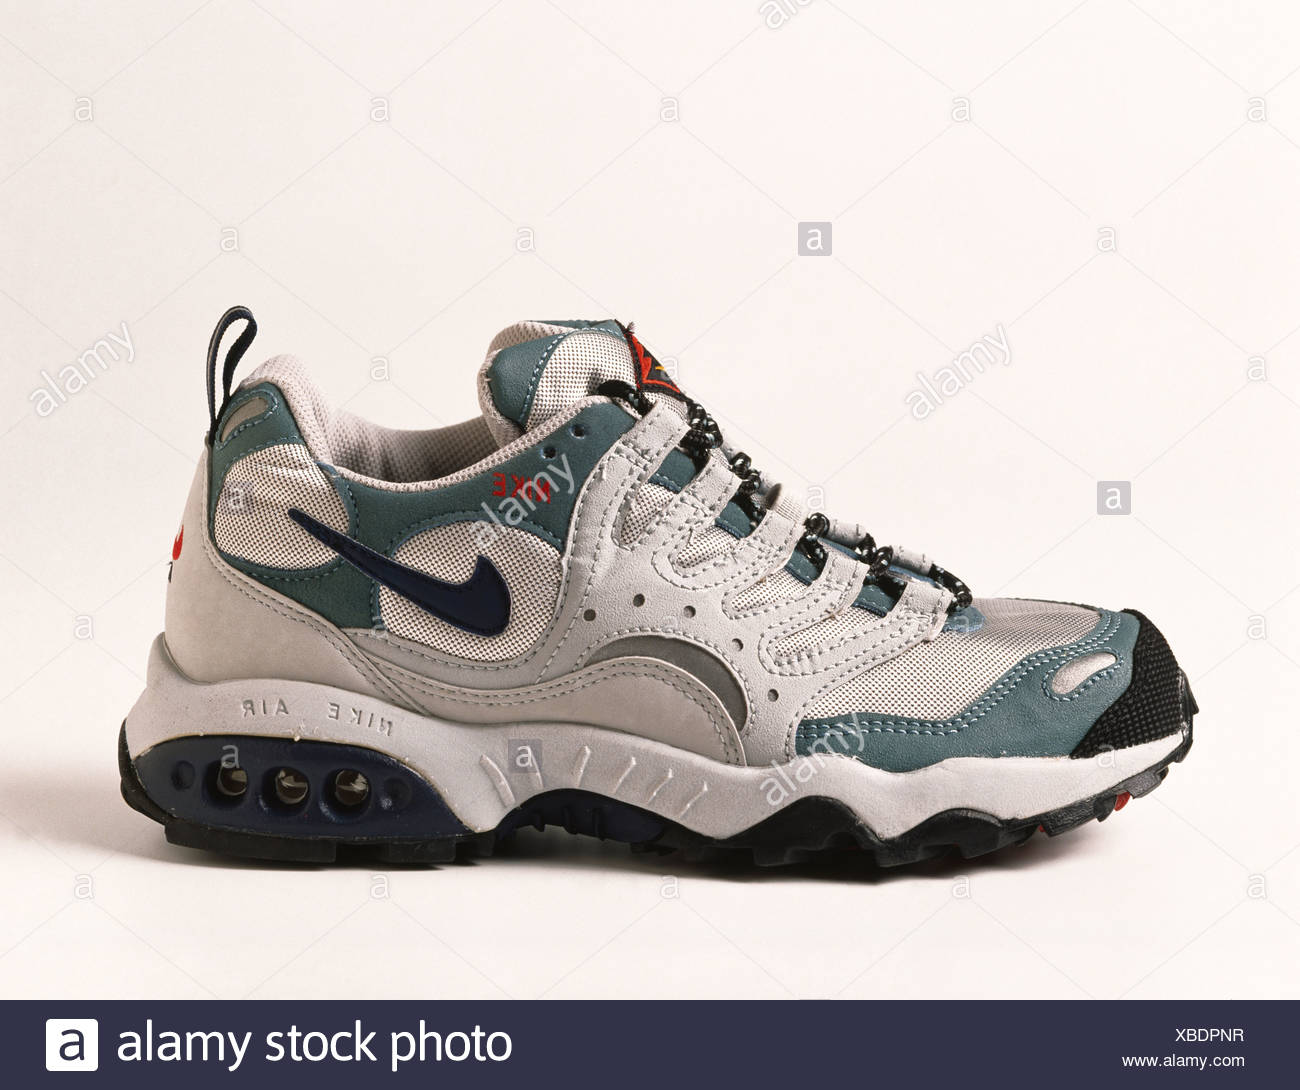 d151040a69 Nike Air Trainers Shoes Footwear Stock Photos & Nike Air Trainers ...